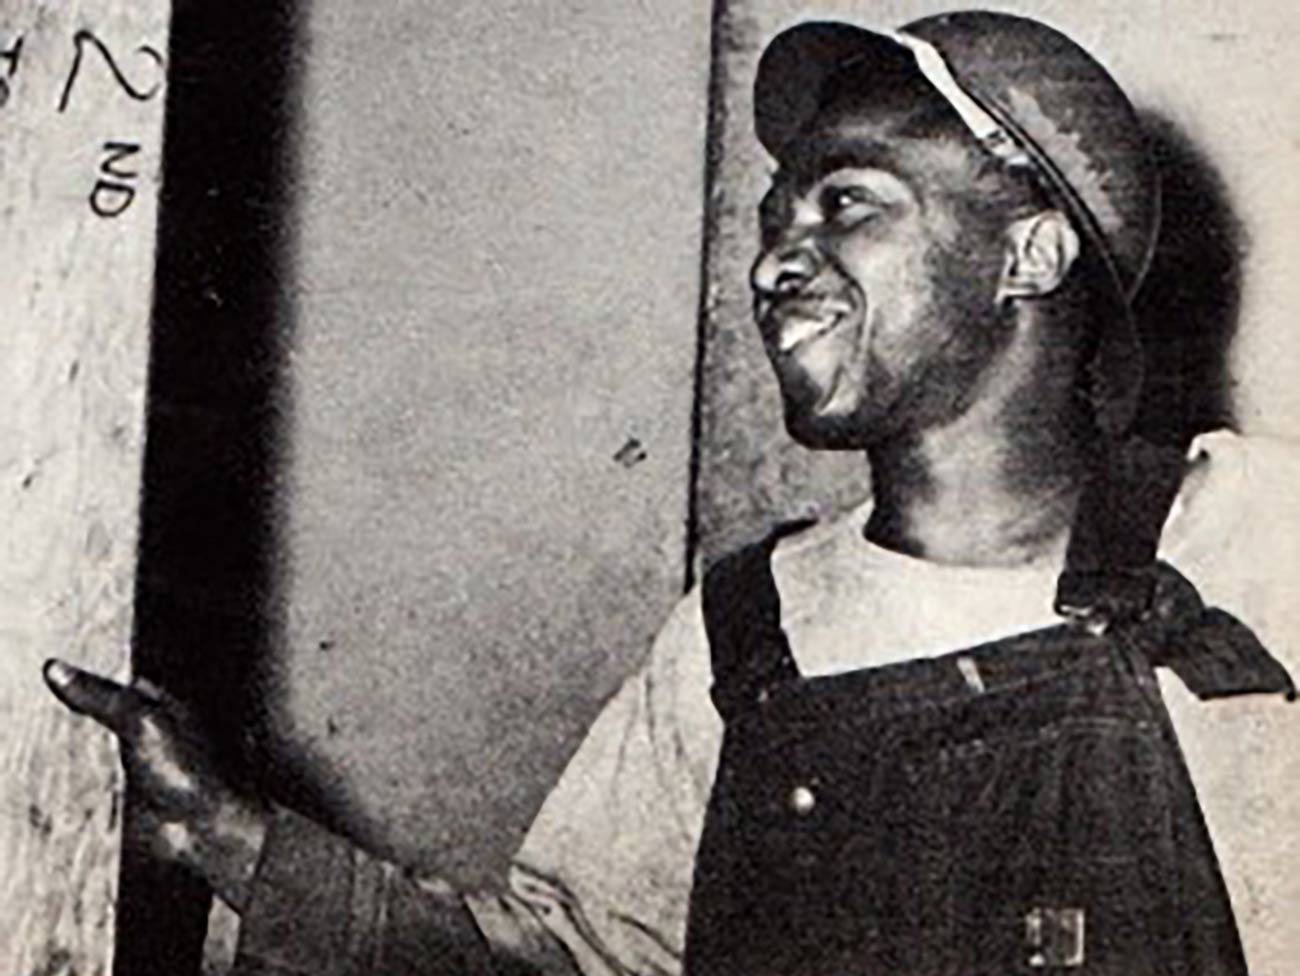 Black and white photo of Ralph Kinney wearing overalls and a hard hat